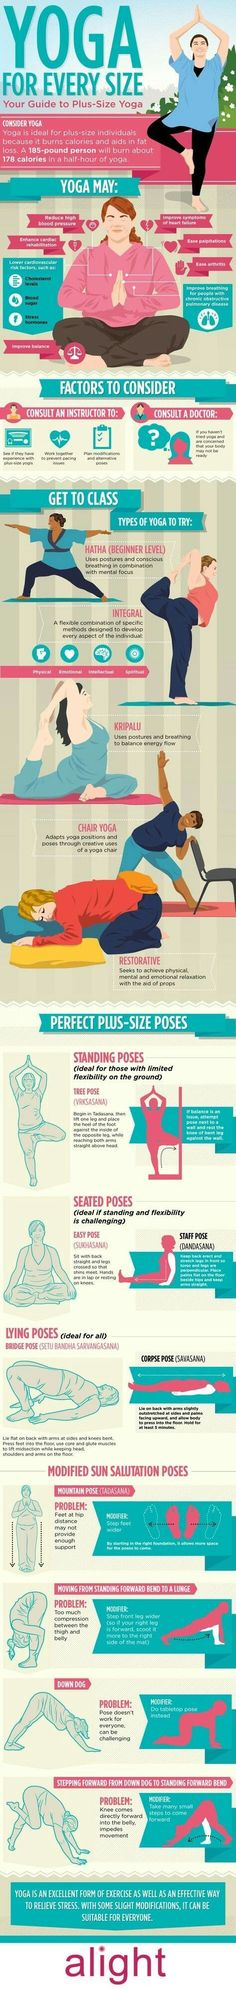 yoga for beginners/becoming more flexible/yoga for plus sized women